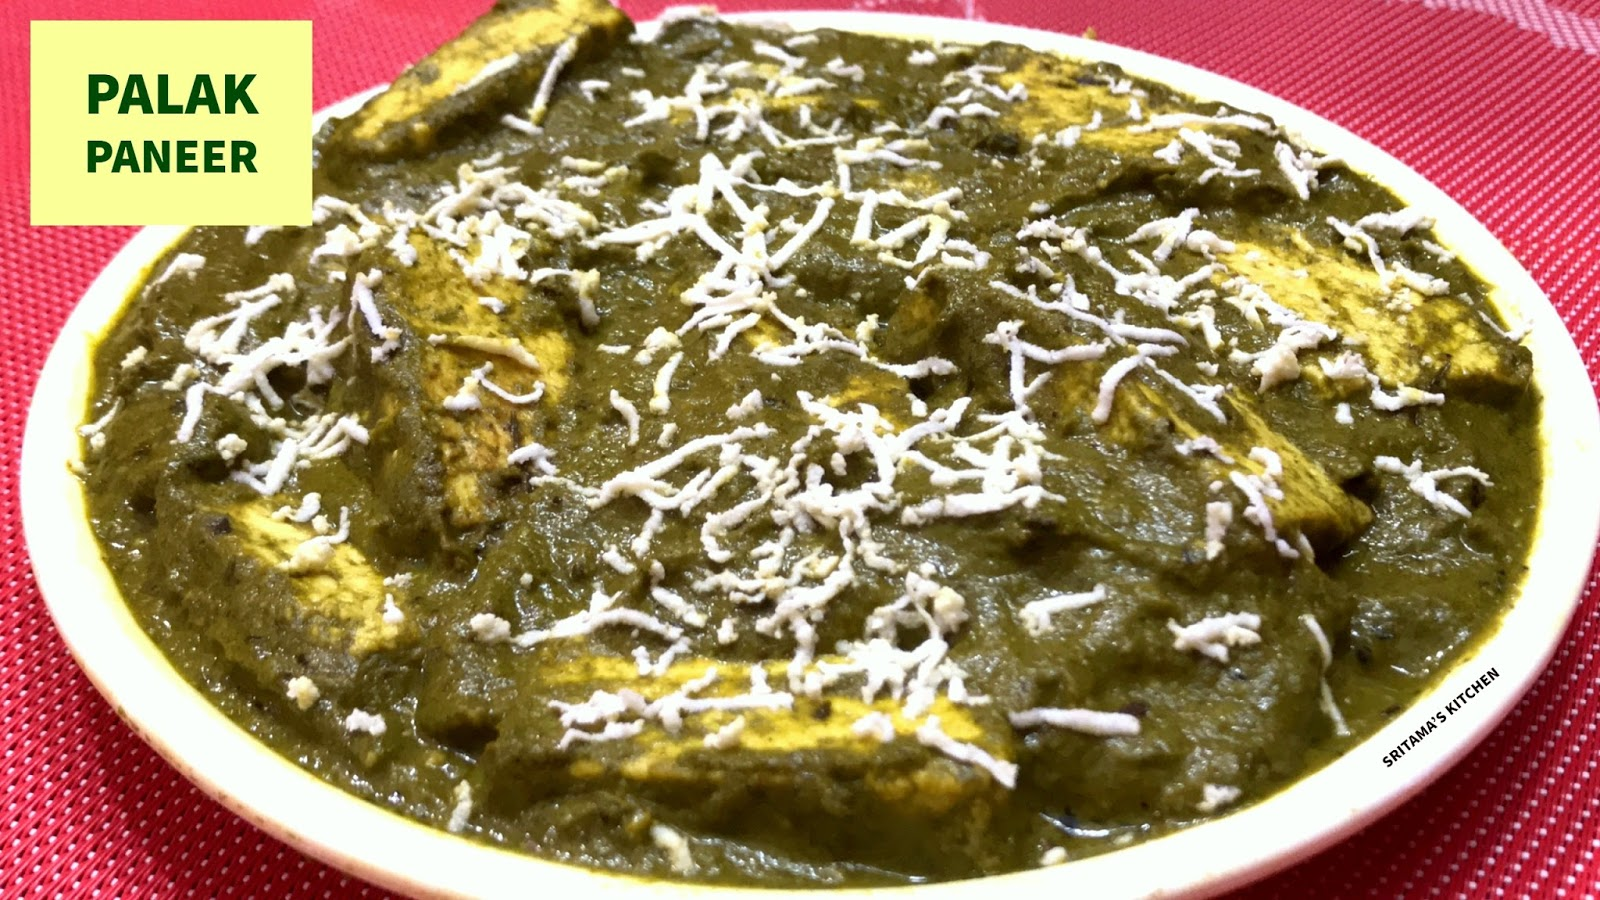 Dhaba style palak paneer how to make palak paneer in hindi indian dhaba style palak paneer how to make palak paneer in hindi indian veg main course recipe spinach paneer recipe easy cottage cheese in spinach gravy forumfinder Choice Image